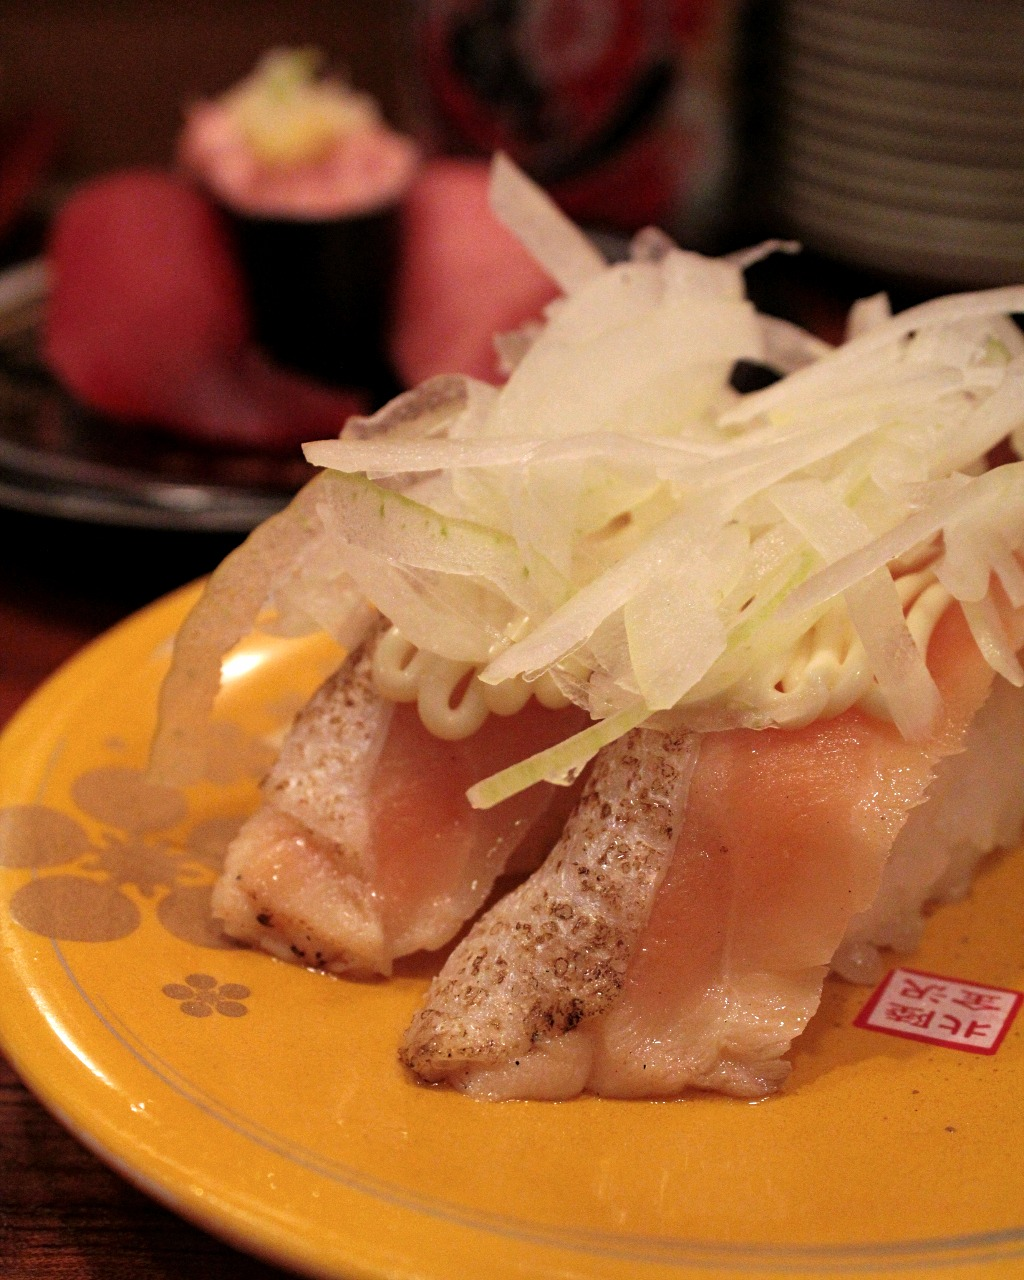 Slightly seared sushi with a generous portion of green onion at Mori Mori Sushi in Omicho Fish Market, Kanazawa, Japan